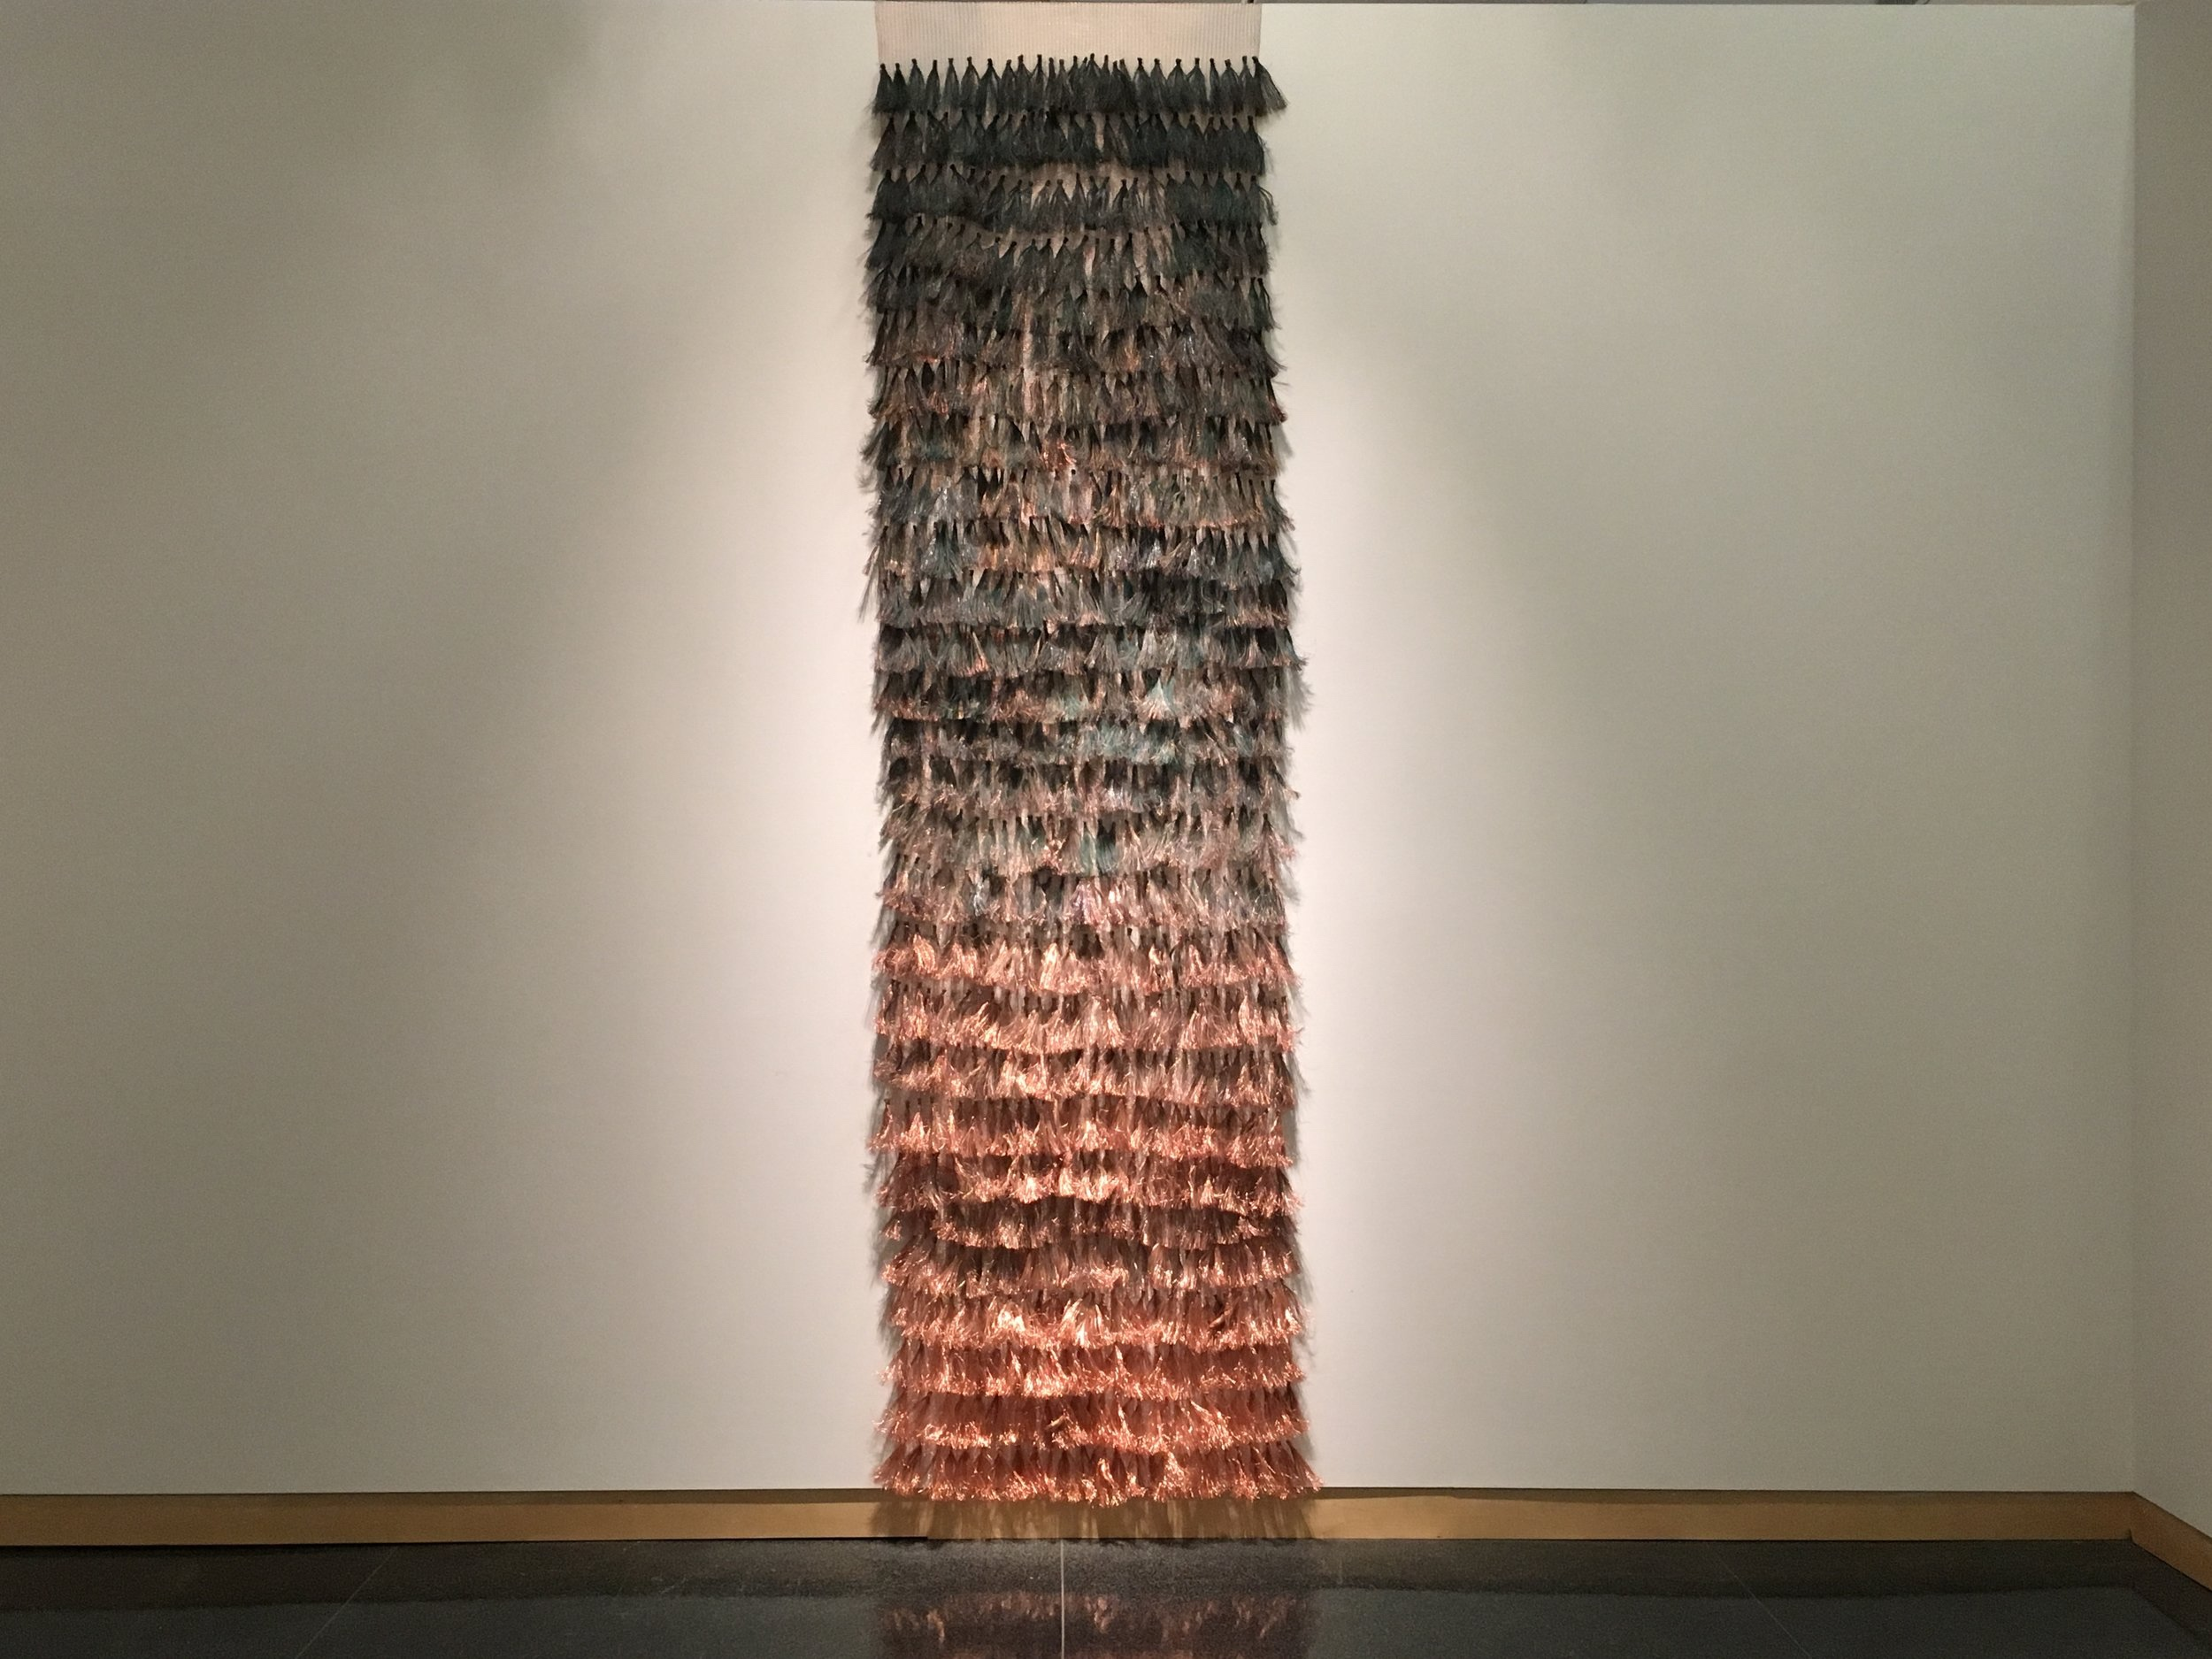 "Hand Woven Copper Wire Variable Dimensions=36"" x 160"" x 6"" Price: $4,000"